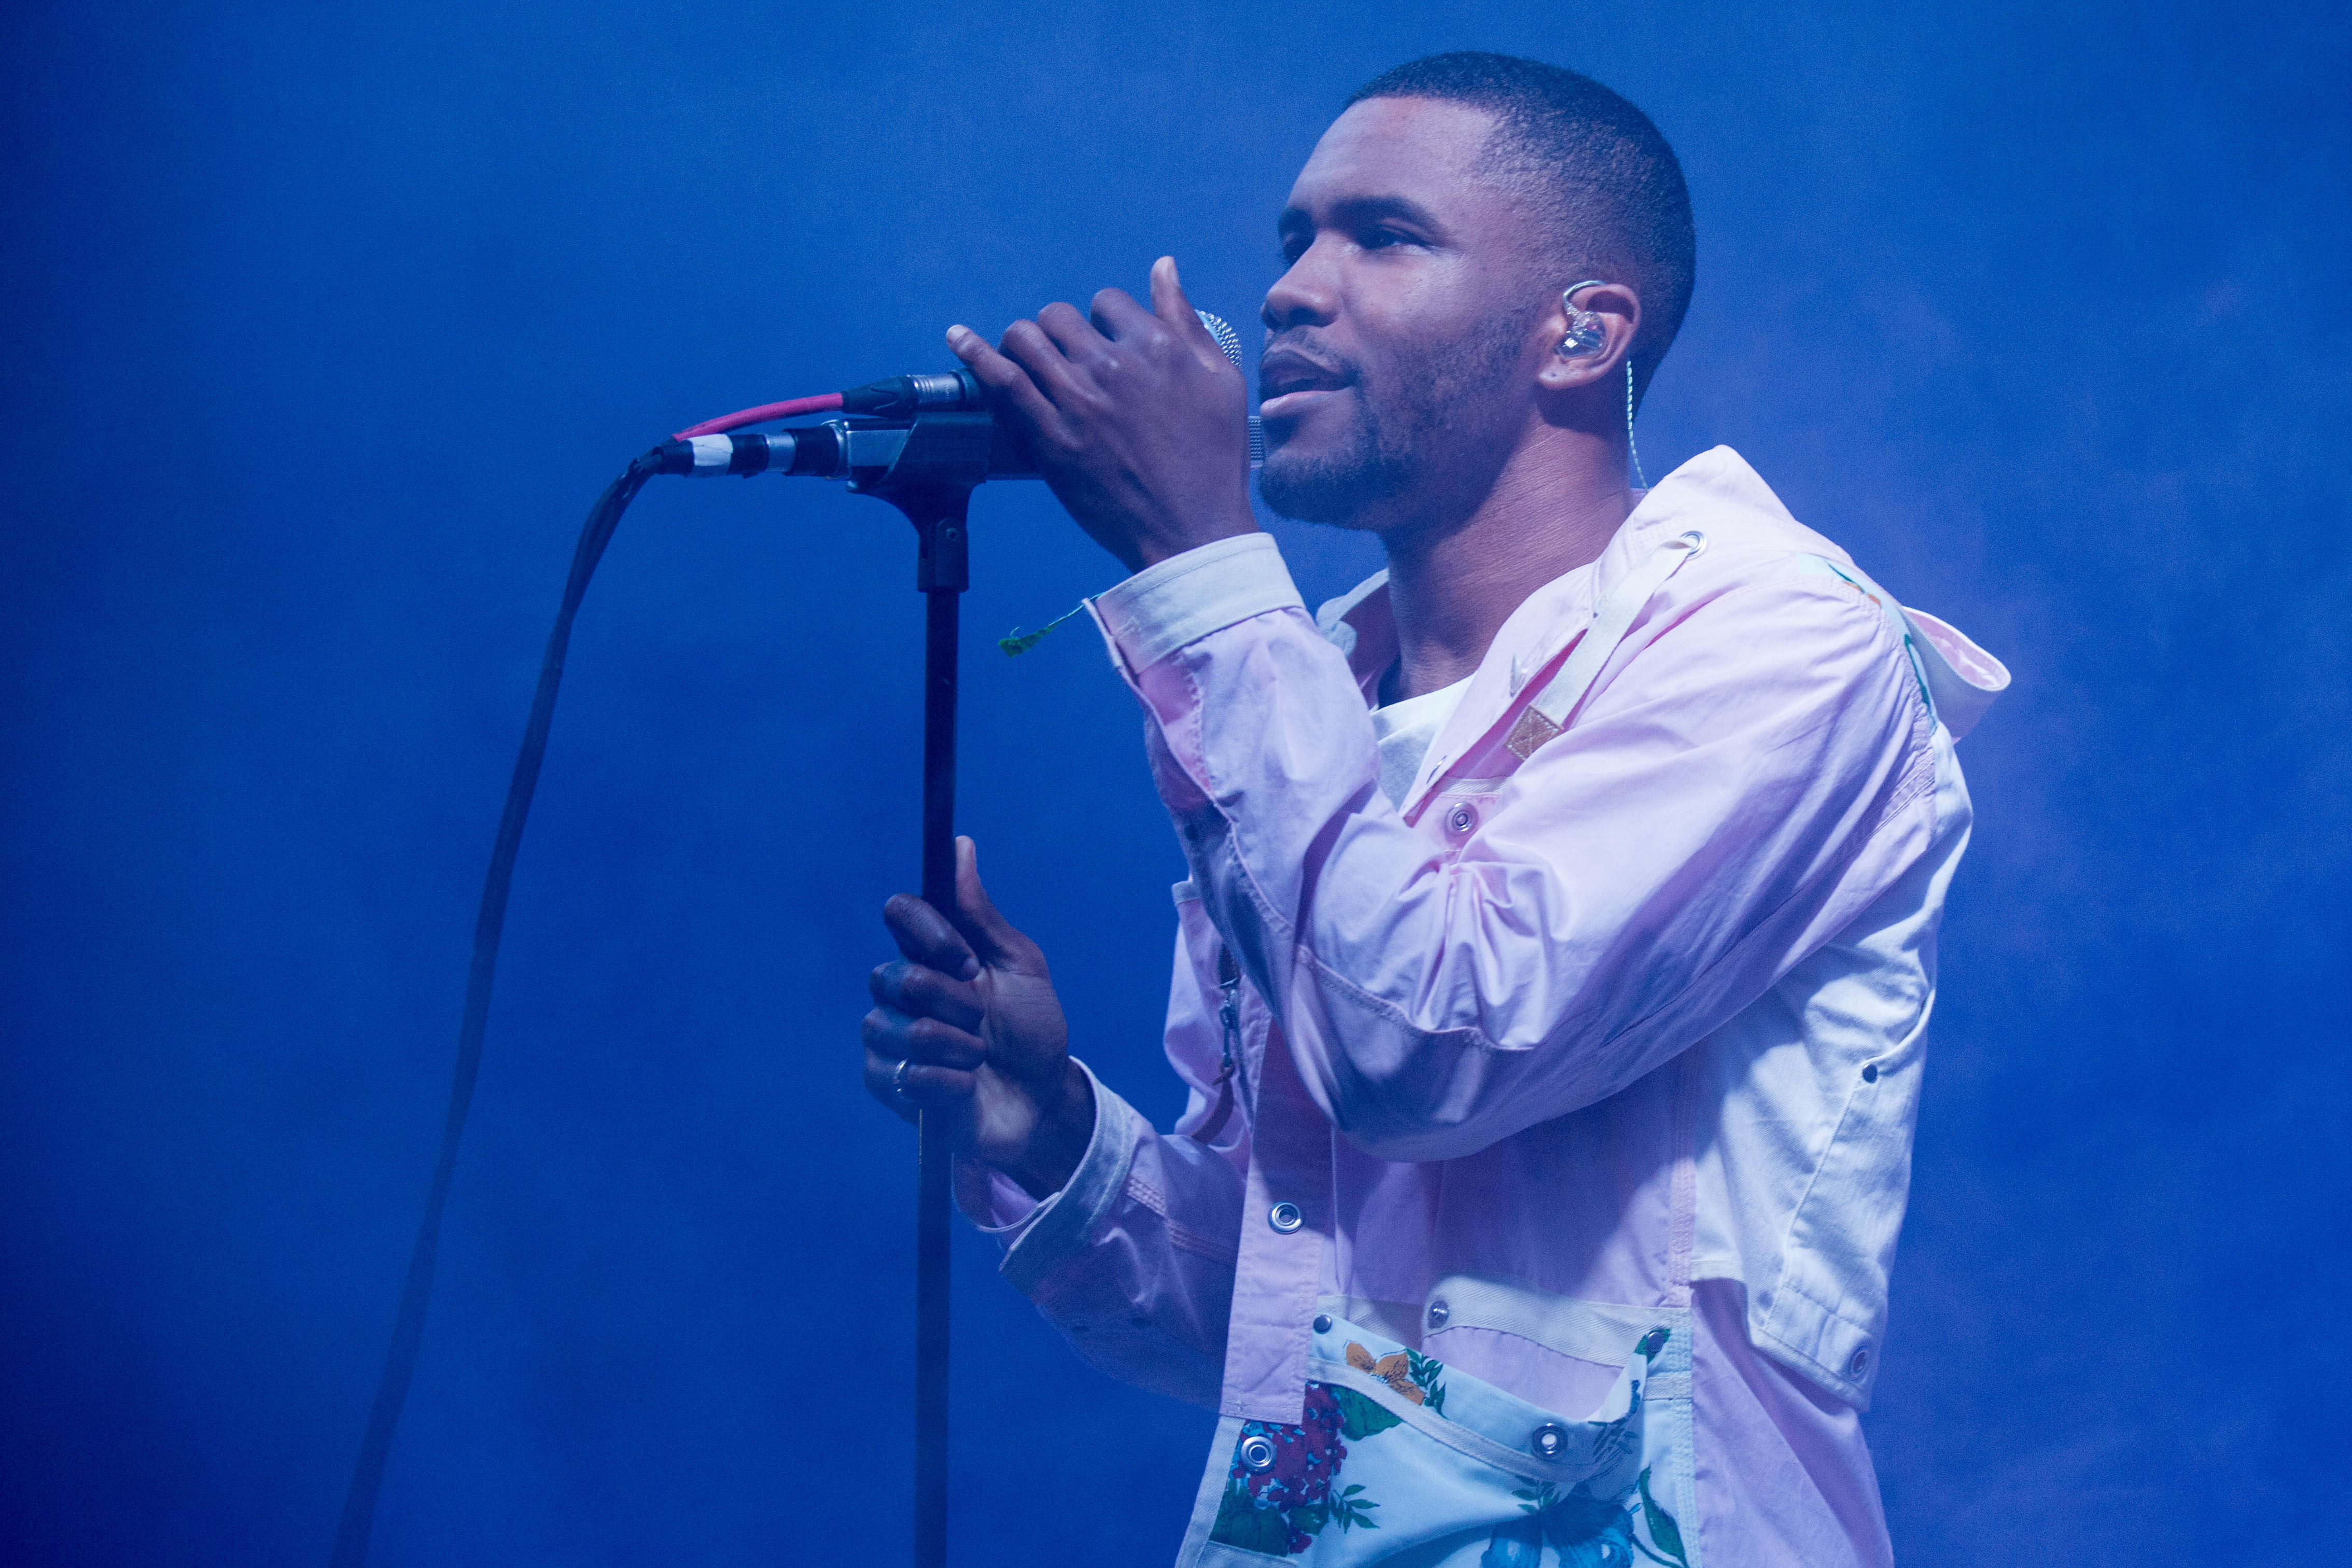 Rapper Frank Ocean performs live at the 2014 Bonnaroo Music and Arts Festival in Manchester, Tennessee on June 14, 2014.